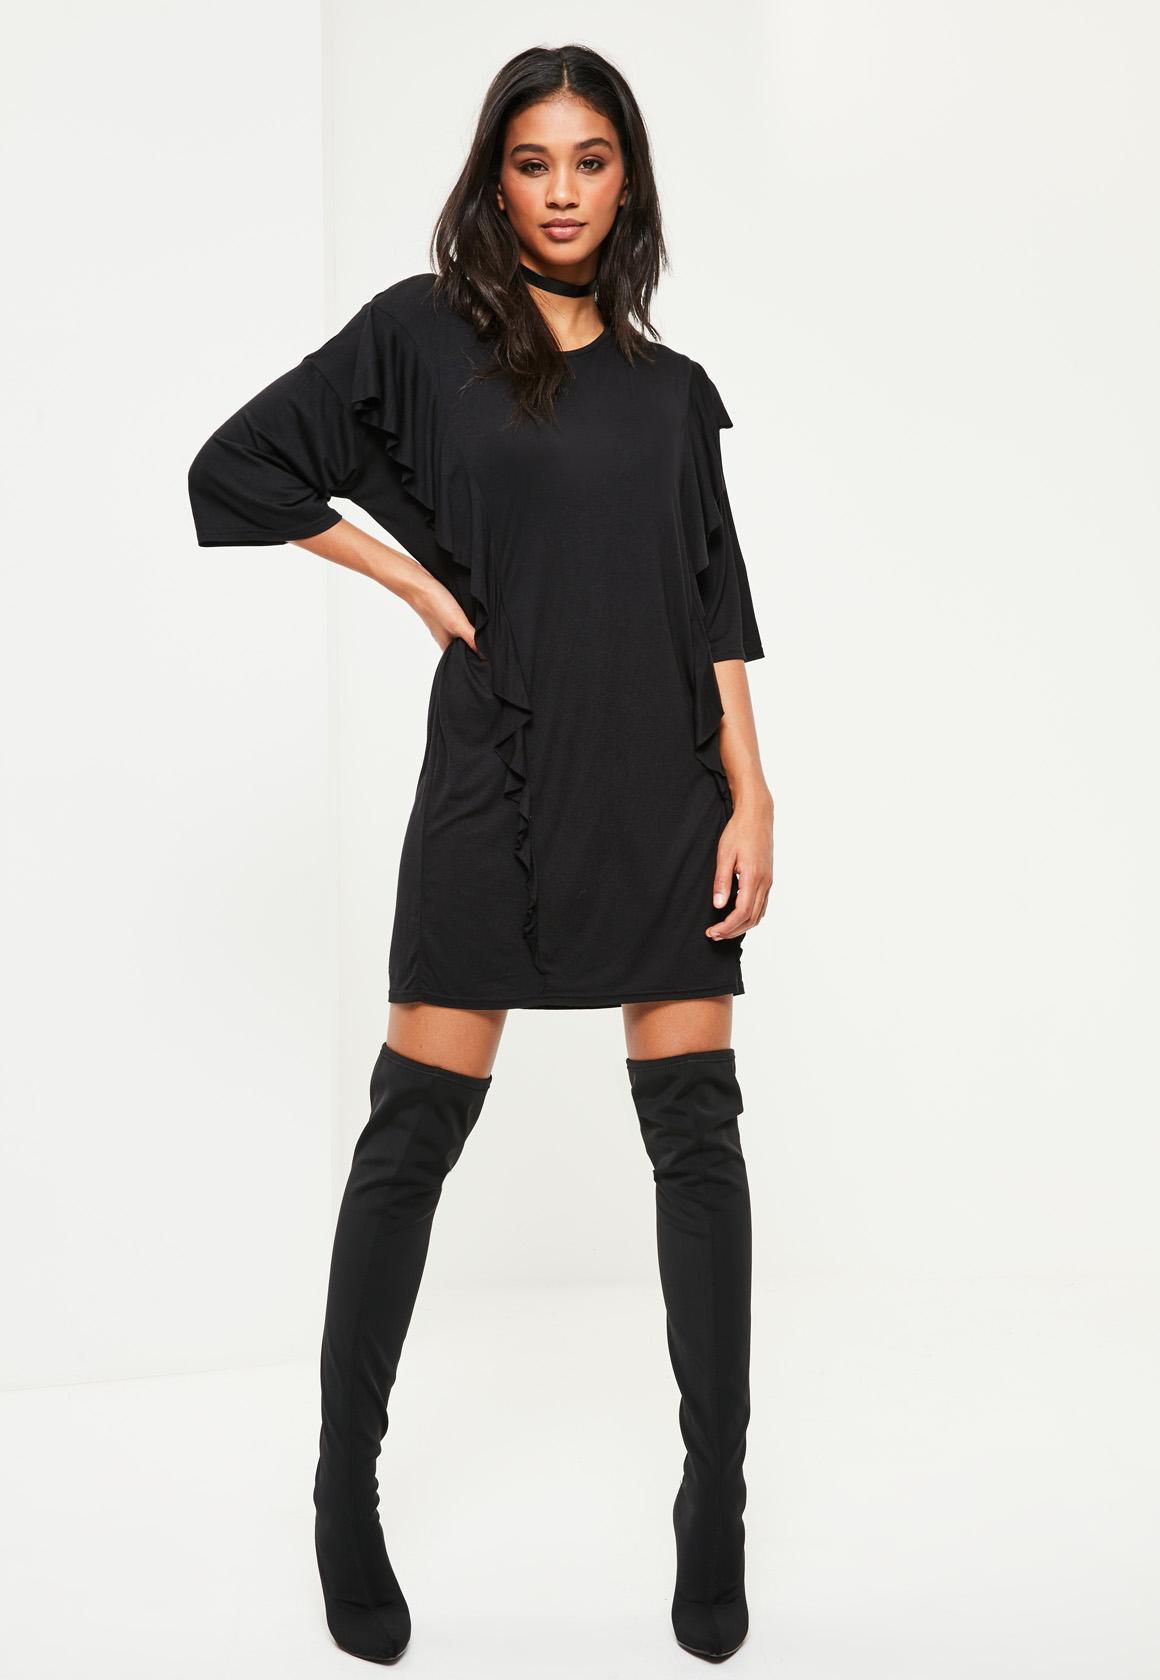 Black shirt dress - Previous Next